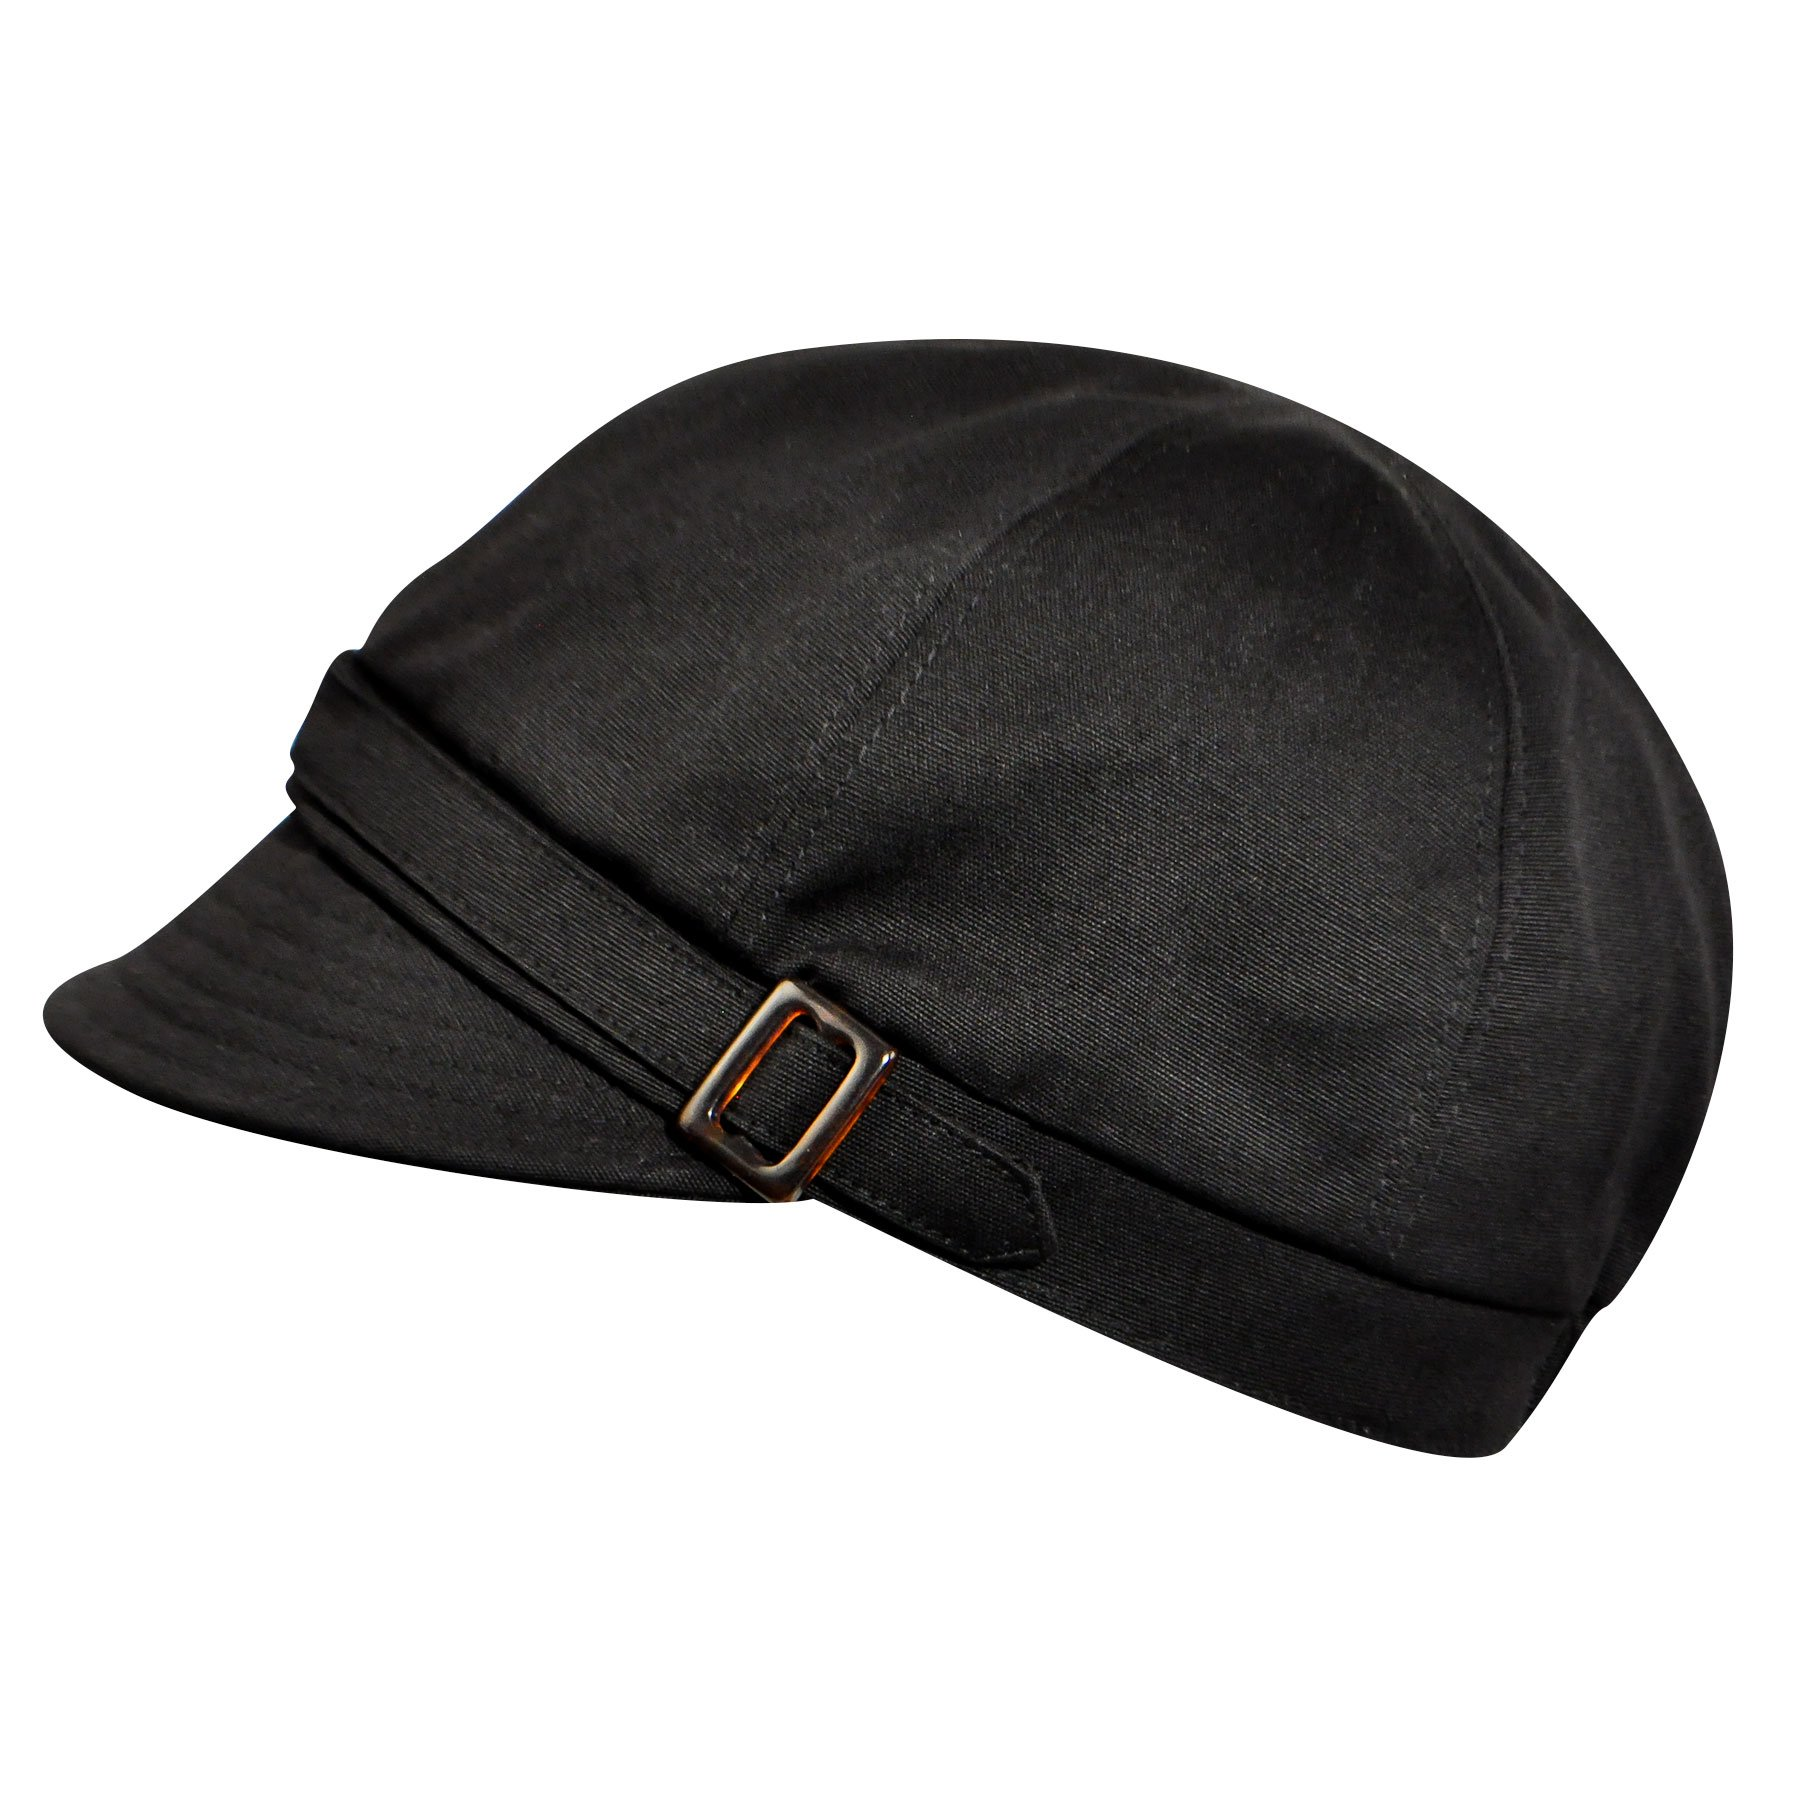 Betmar Women's Aimee Newsboy Cap, Black, One Size